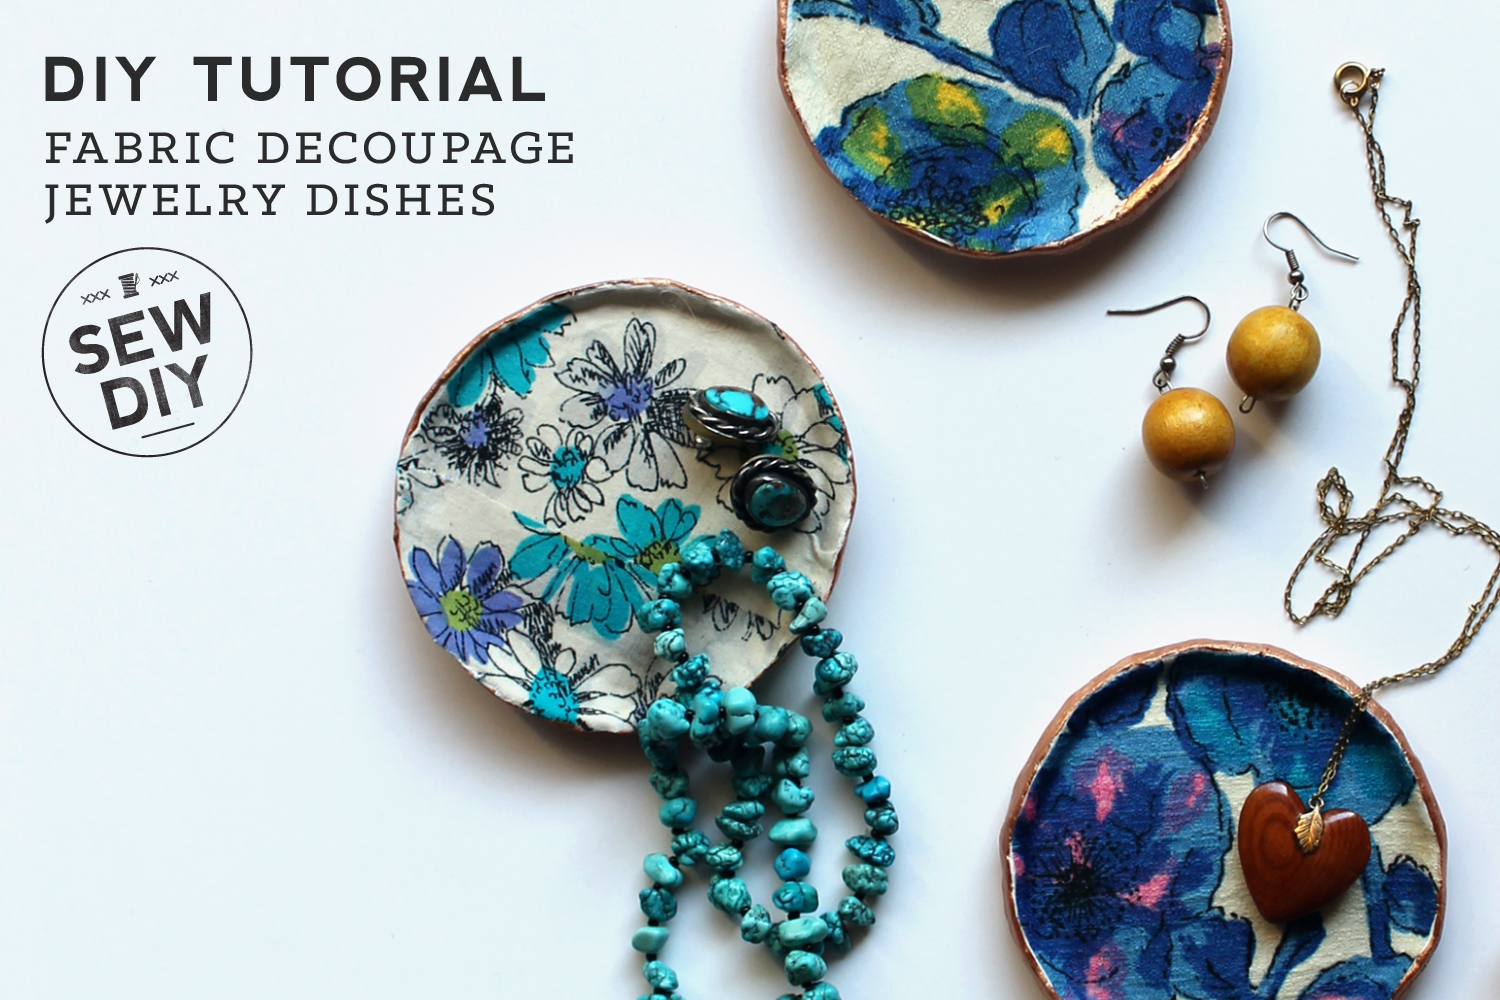 DIY Tutorial Fabric Decoupage Jewelry Dishes Sew DIY